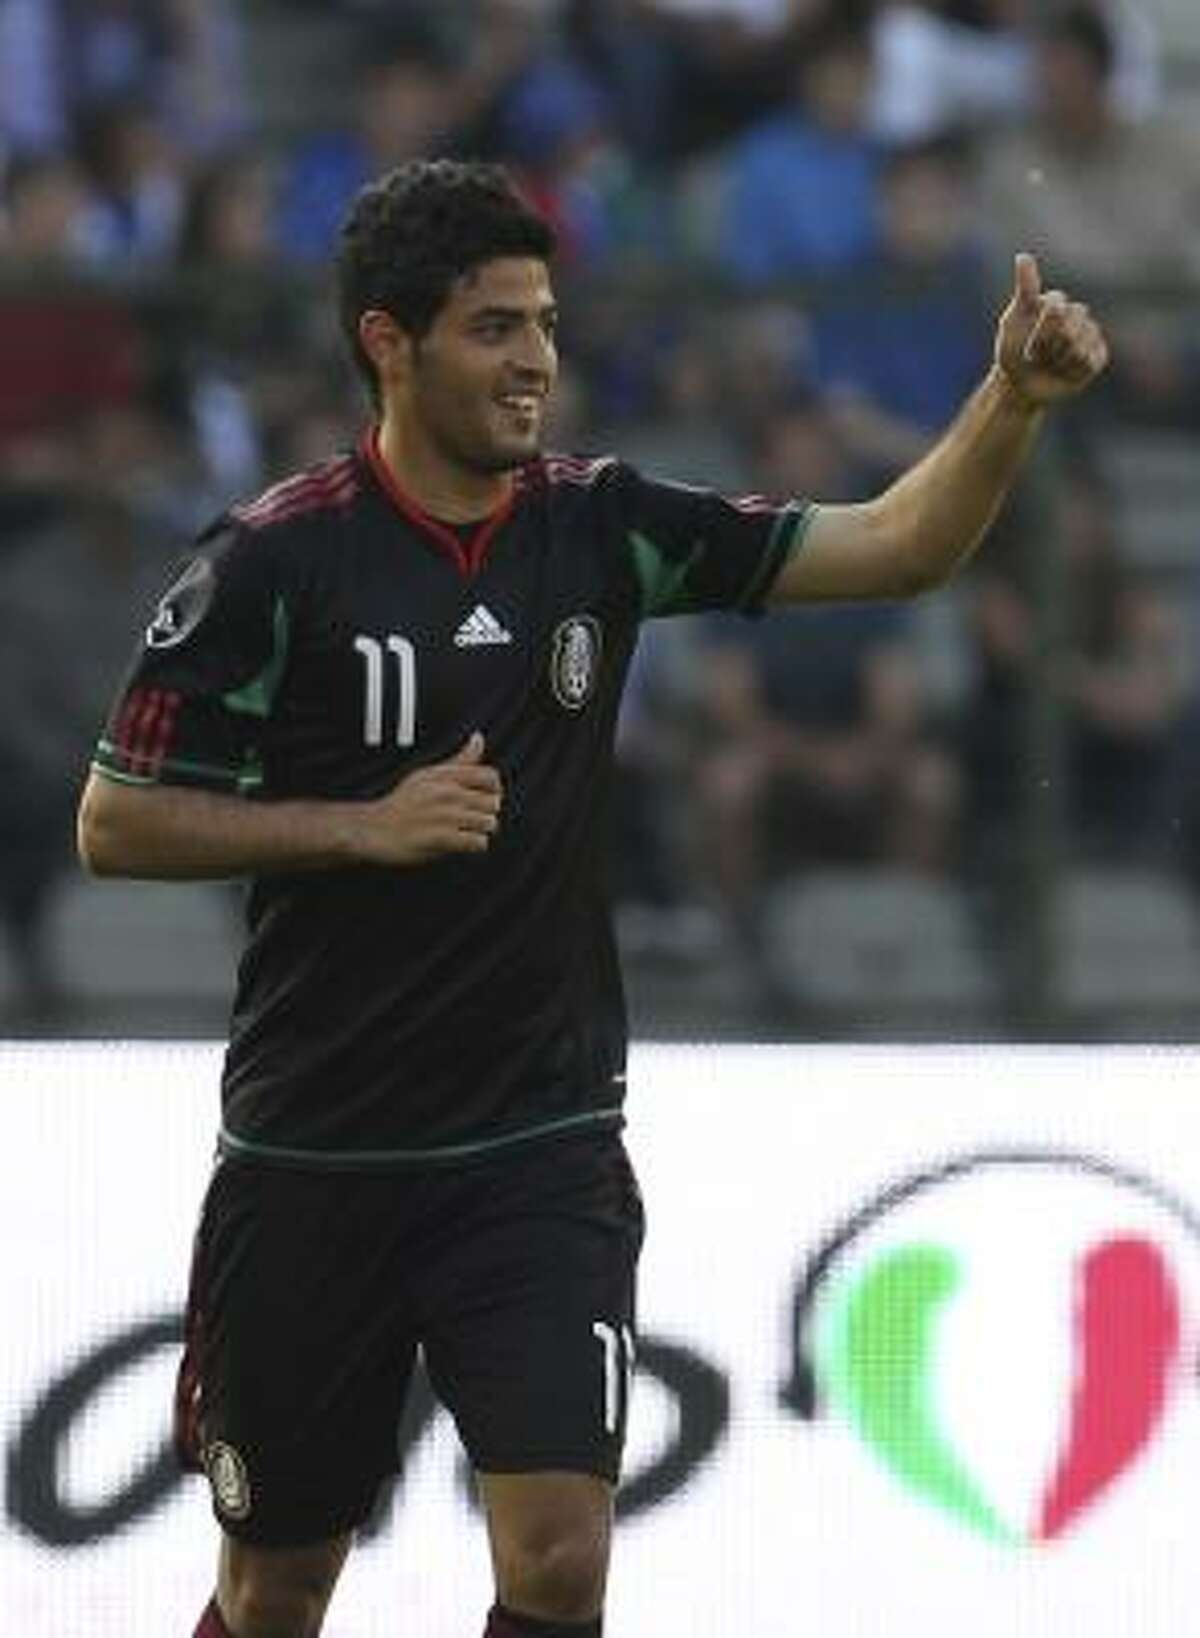 Mexico's Carlos Vela shows thumbs up after scoring the game's first goal in the 17th minute.